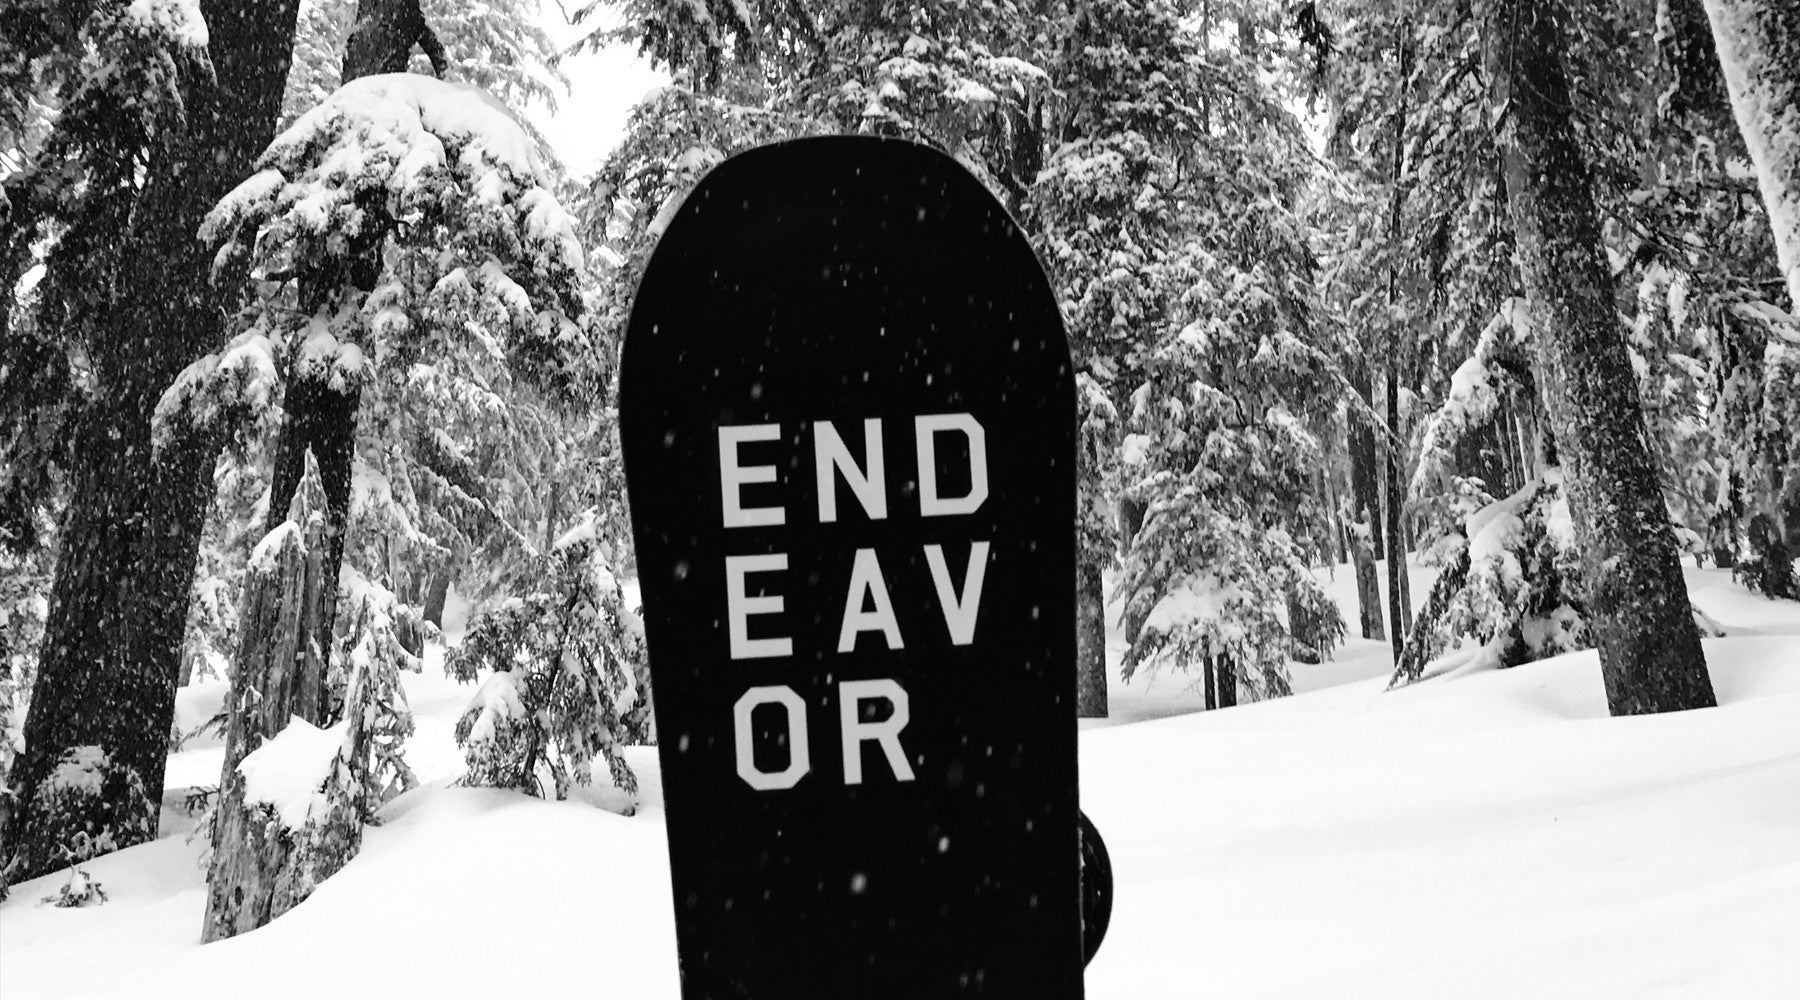 Endeavor Scout Snowboard Lifestyle